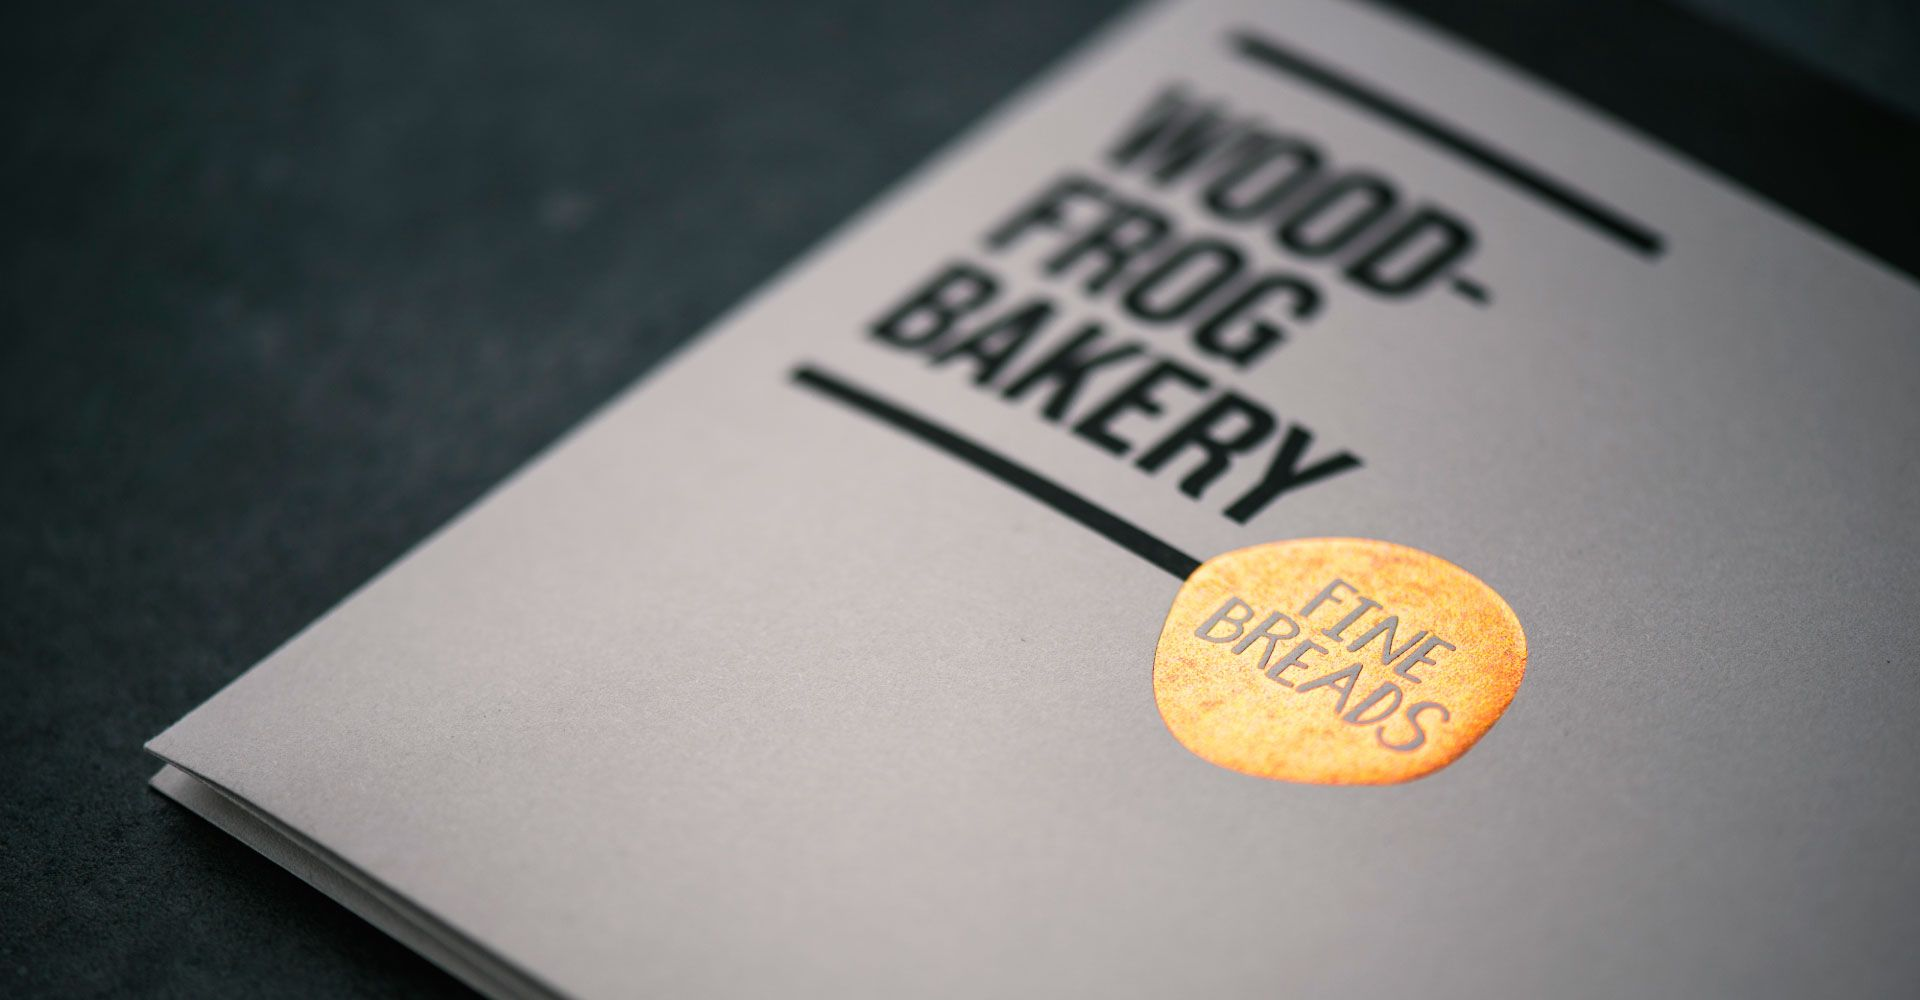 Woodfrog Bakery print by Assembly Branding  #design #brand